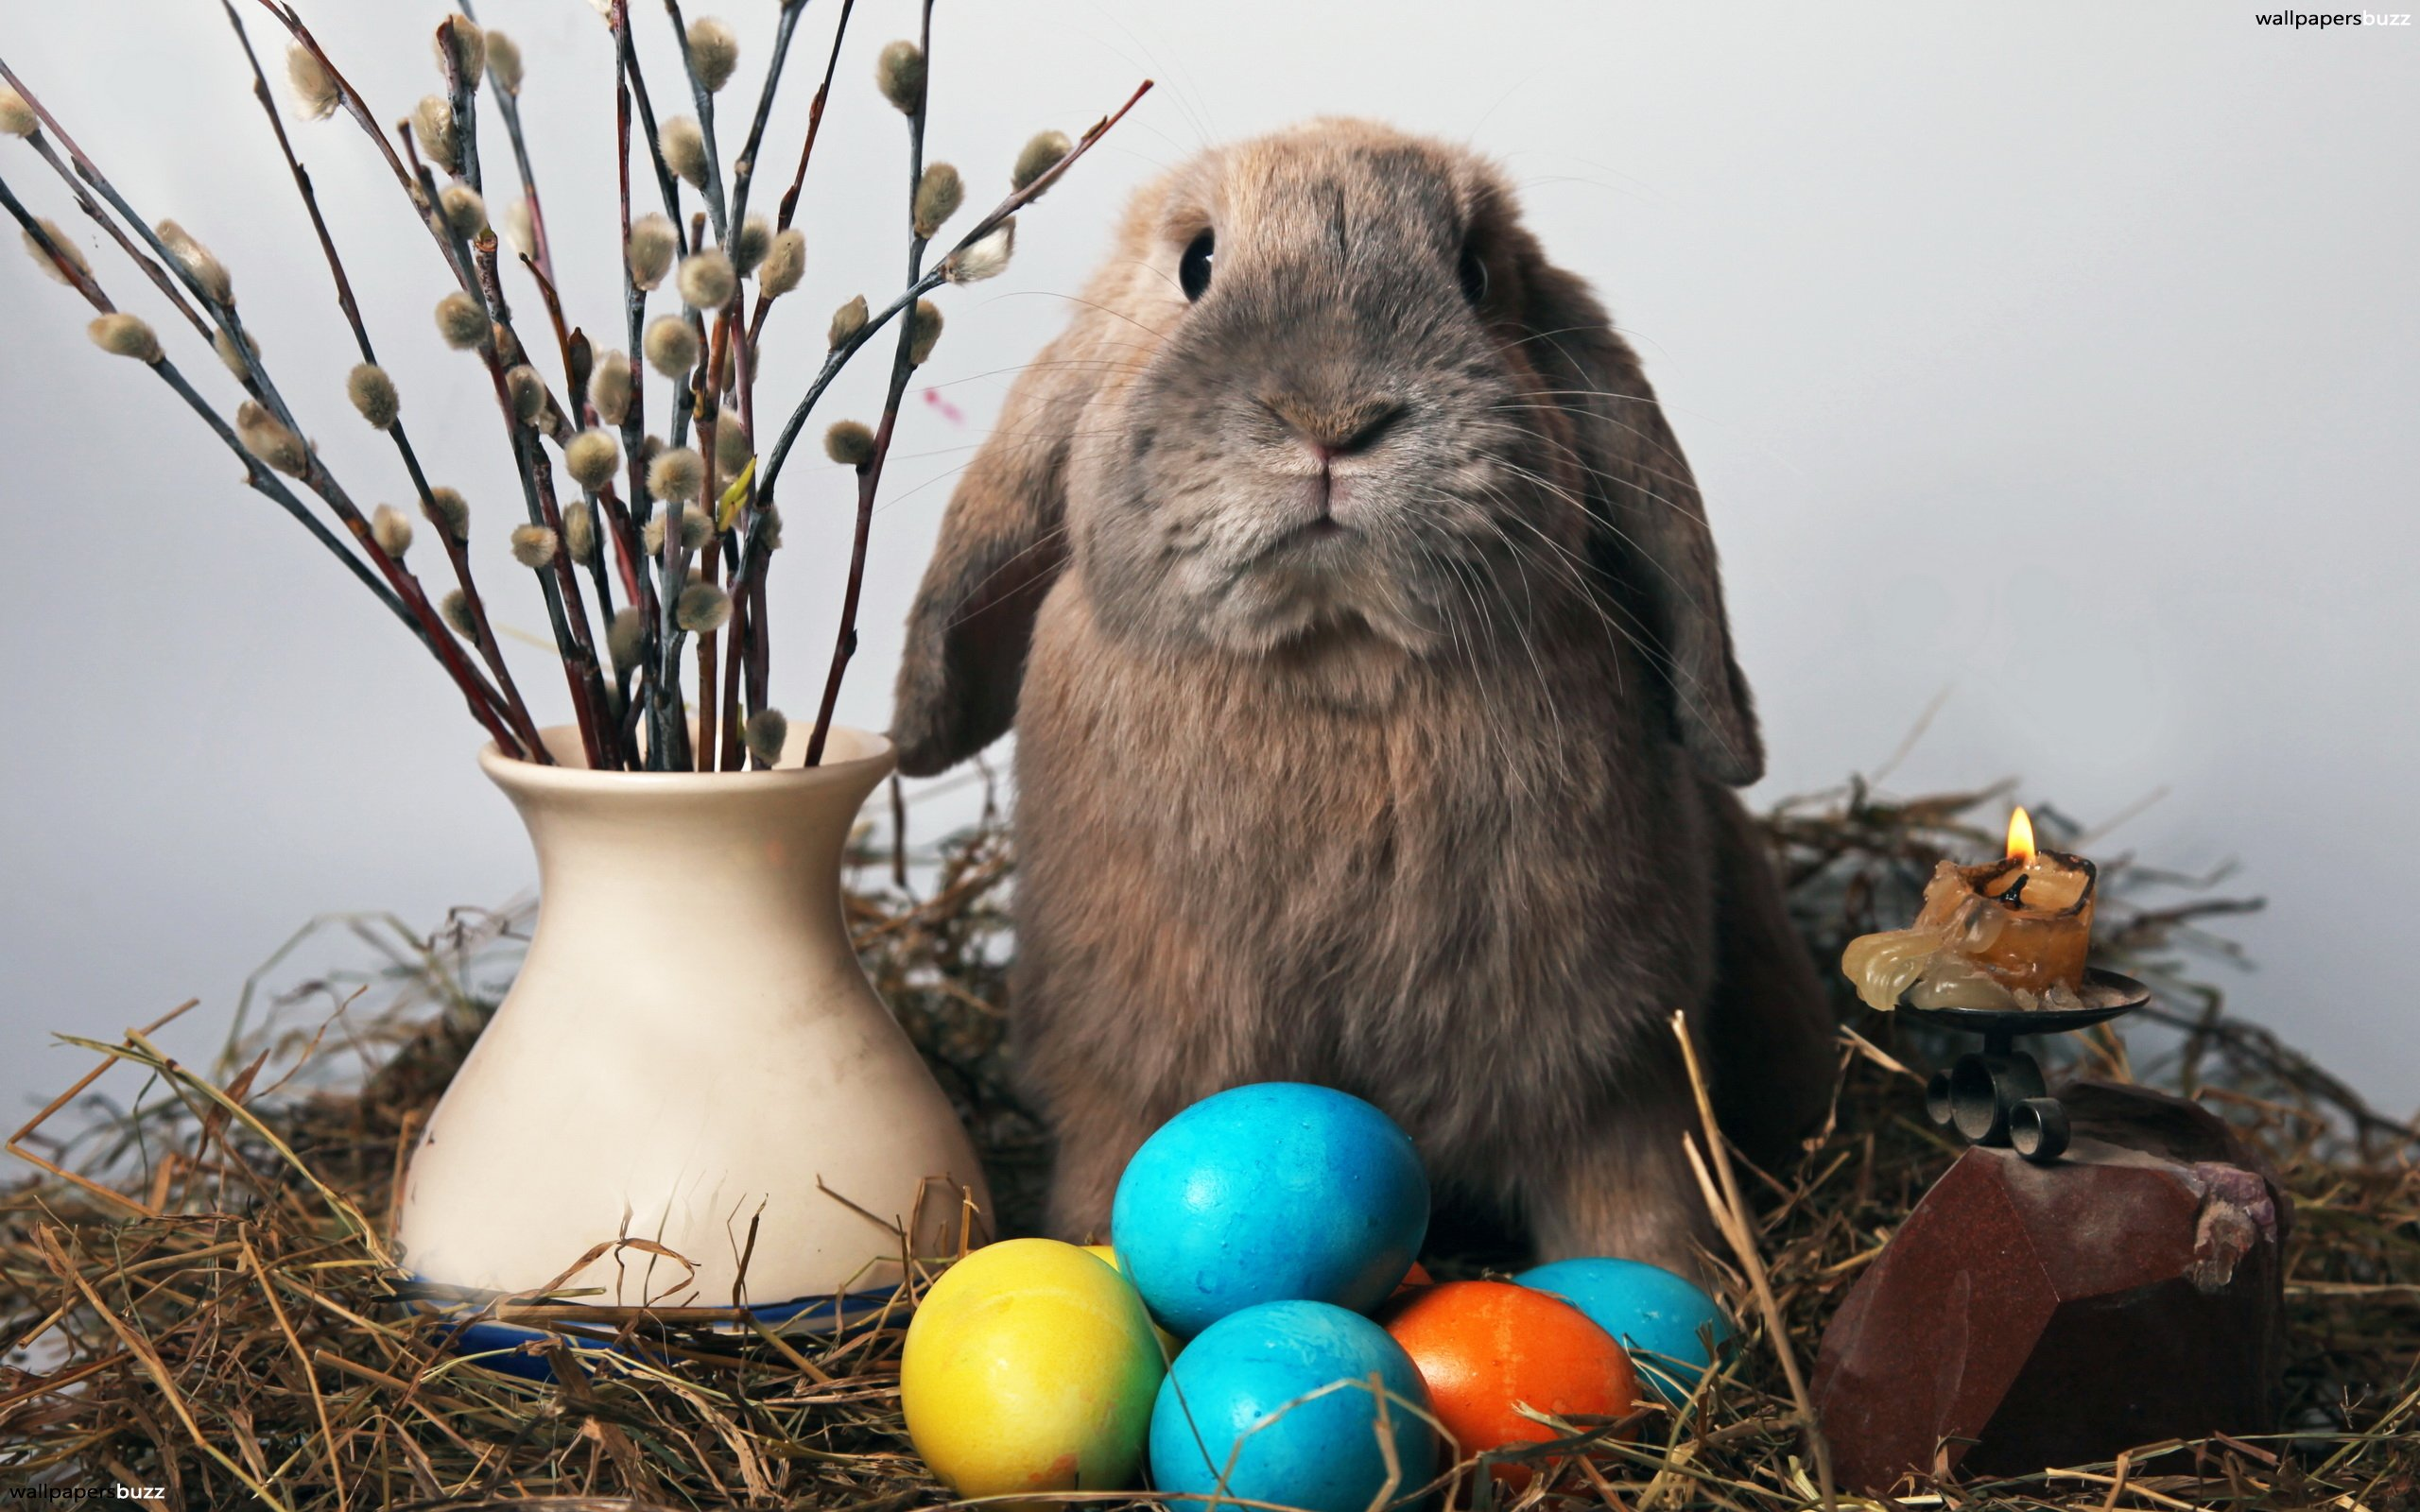 Funny rabbit funny rabbit pictures pictures of rabbits funny - Cute Bunny And Colorful Easter Eggs Funny Picture